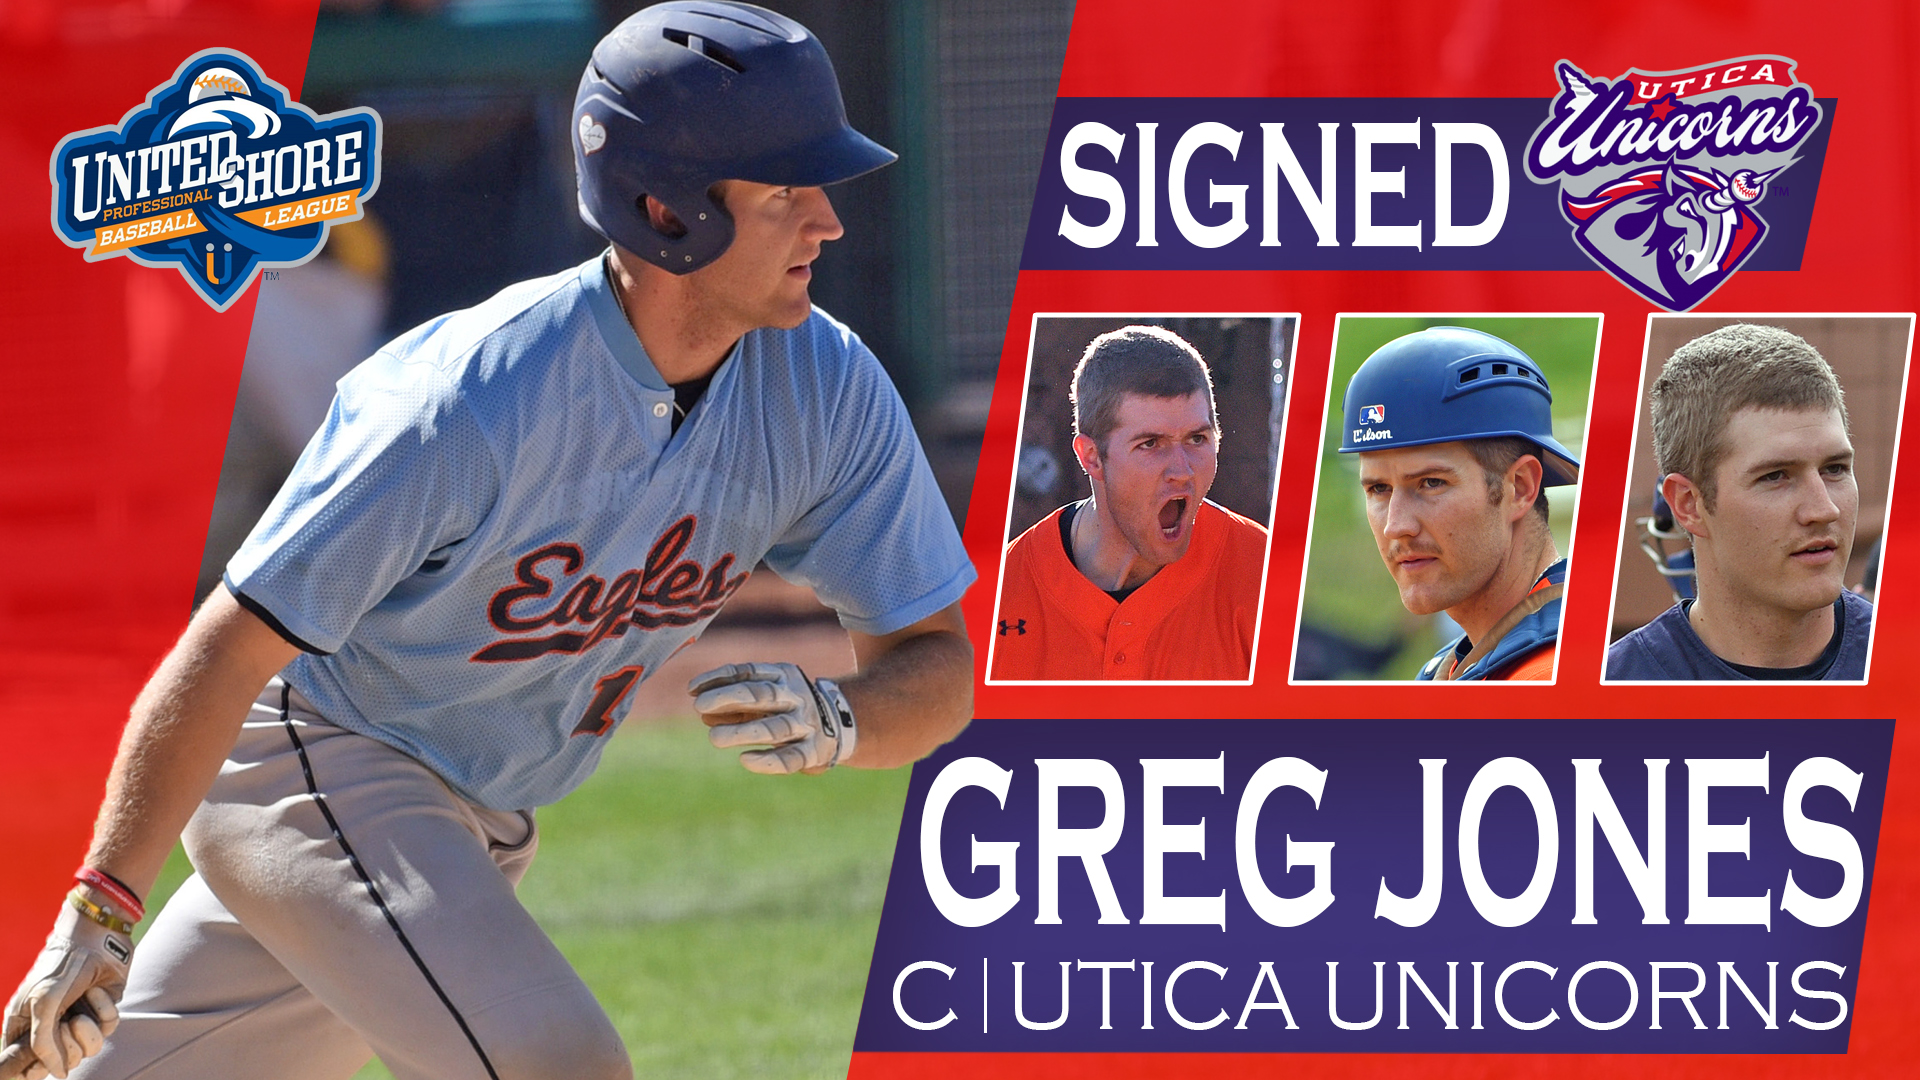 Jones signs professional contract with Utica Unicorns